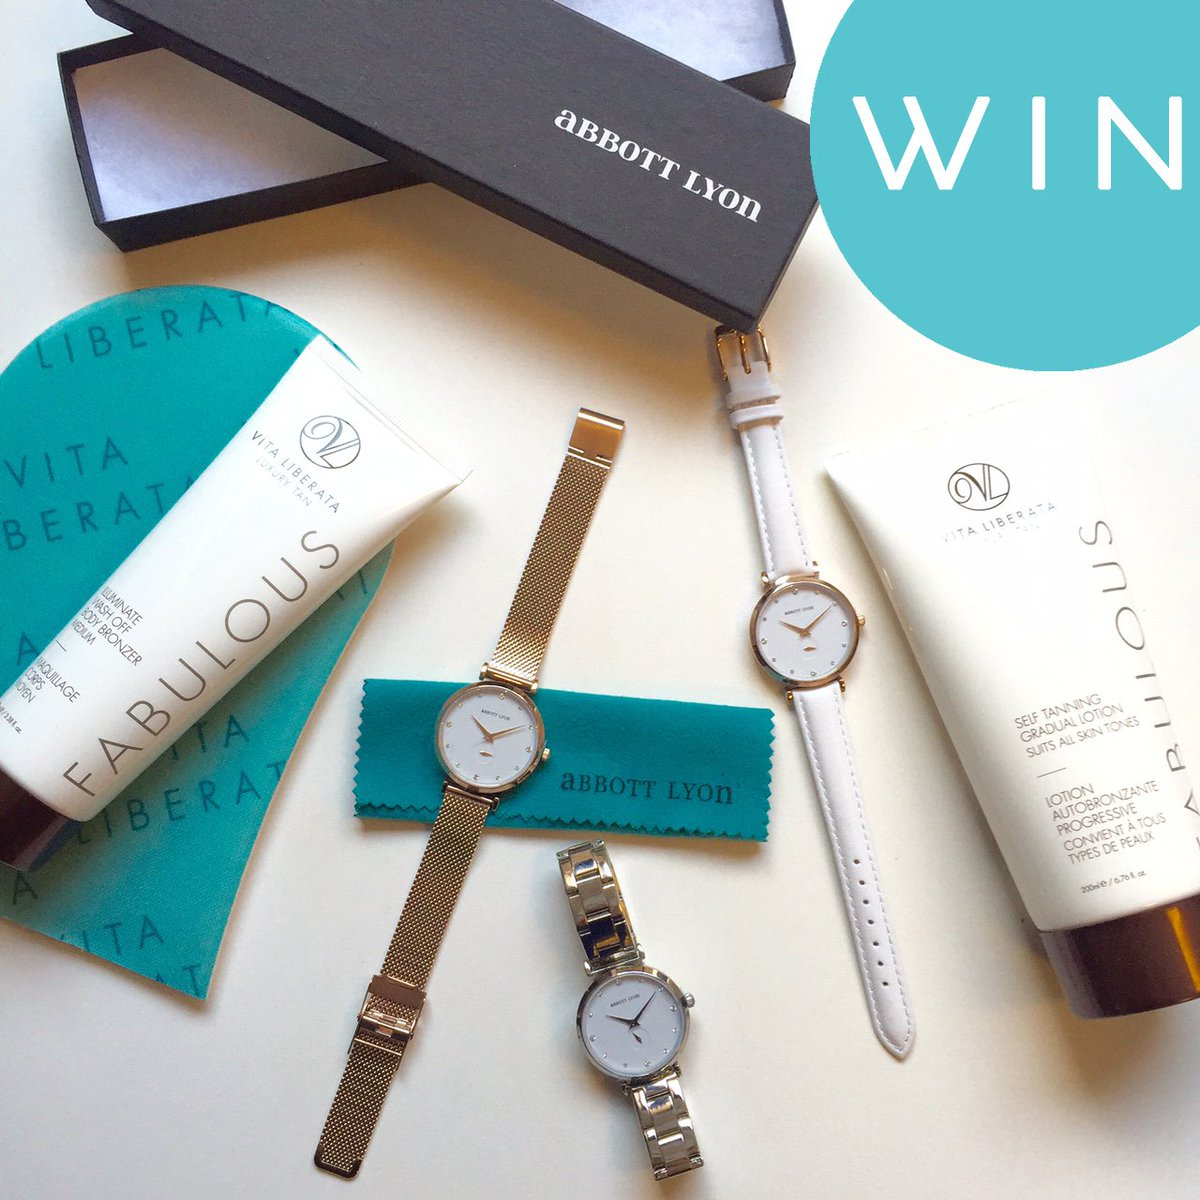 #Win a gorgeous @AbbottLyon watch & #VitaLiberata goodies in our exclusive giveaway! RT & Follow to enter! Ends13/03 https://t.co/MW2ssvMaeT